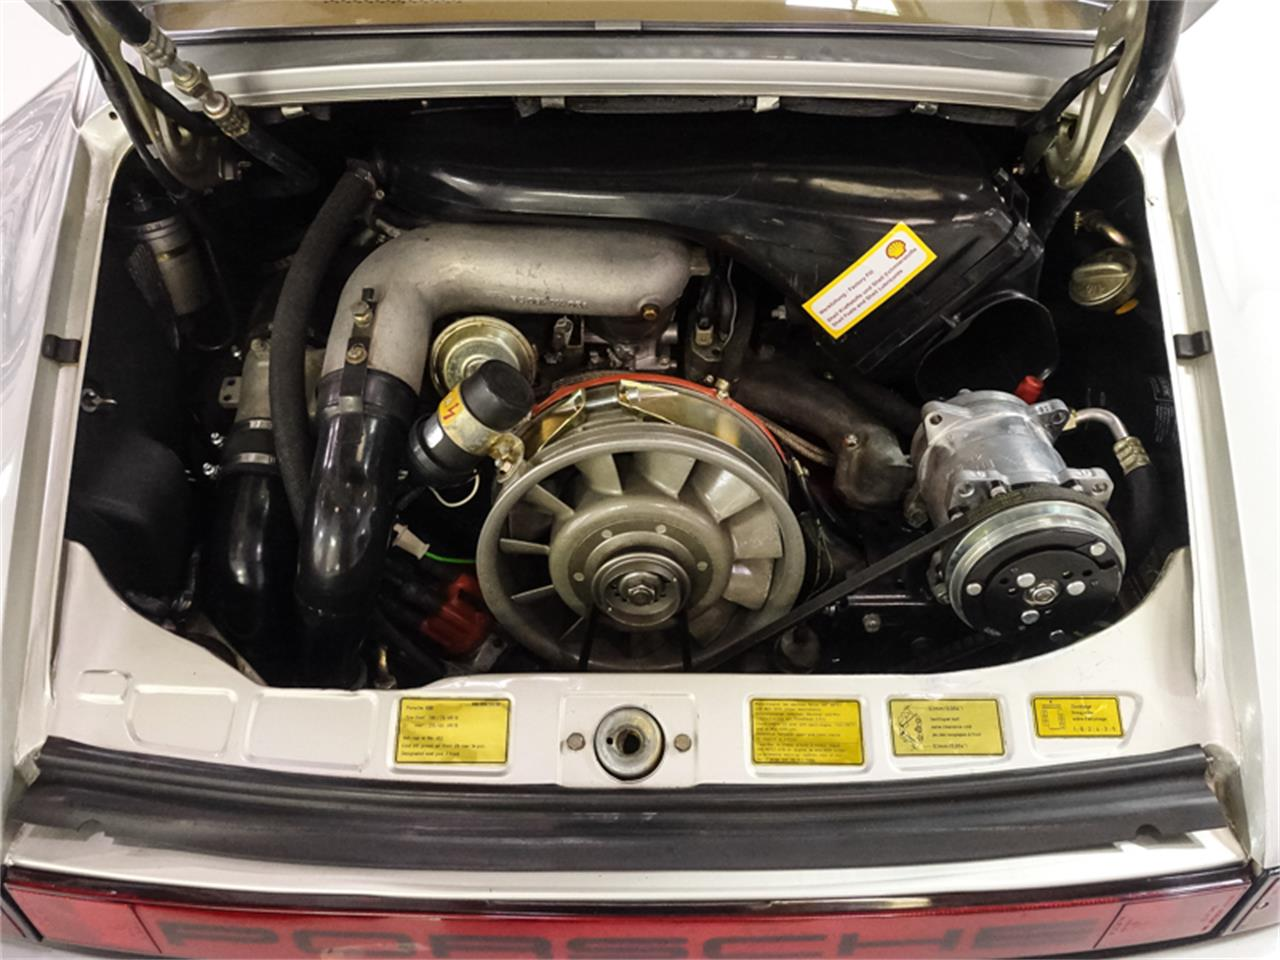 Large Picture of 1976 Porsche 930 Turbo located in St Ann Missouri - $229,900.00 Offered by Daniel Schmitt & Co. - FXKC